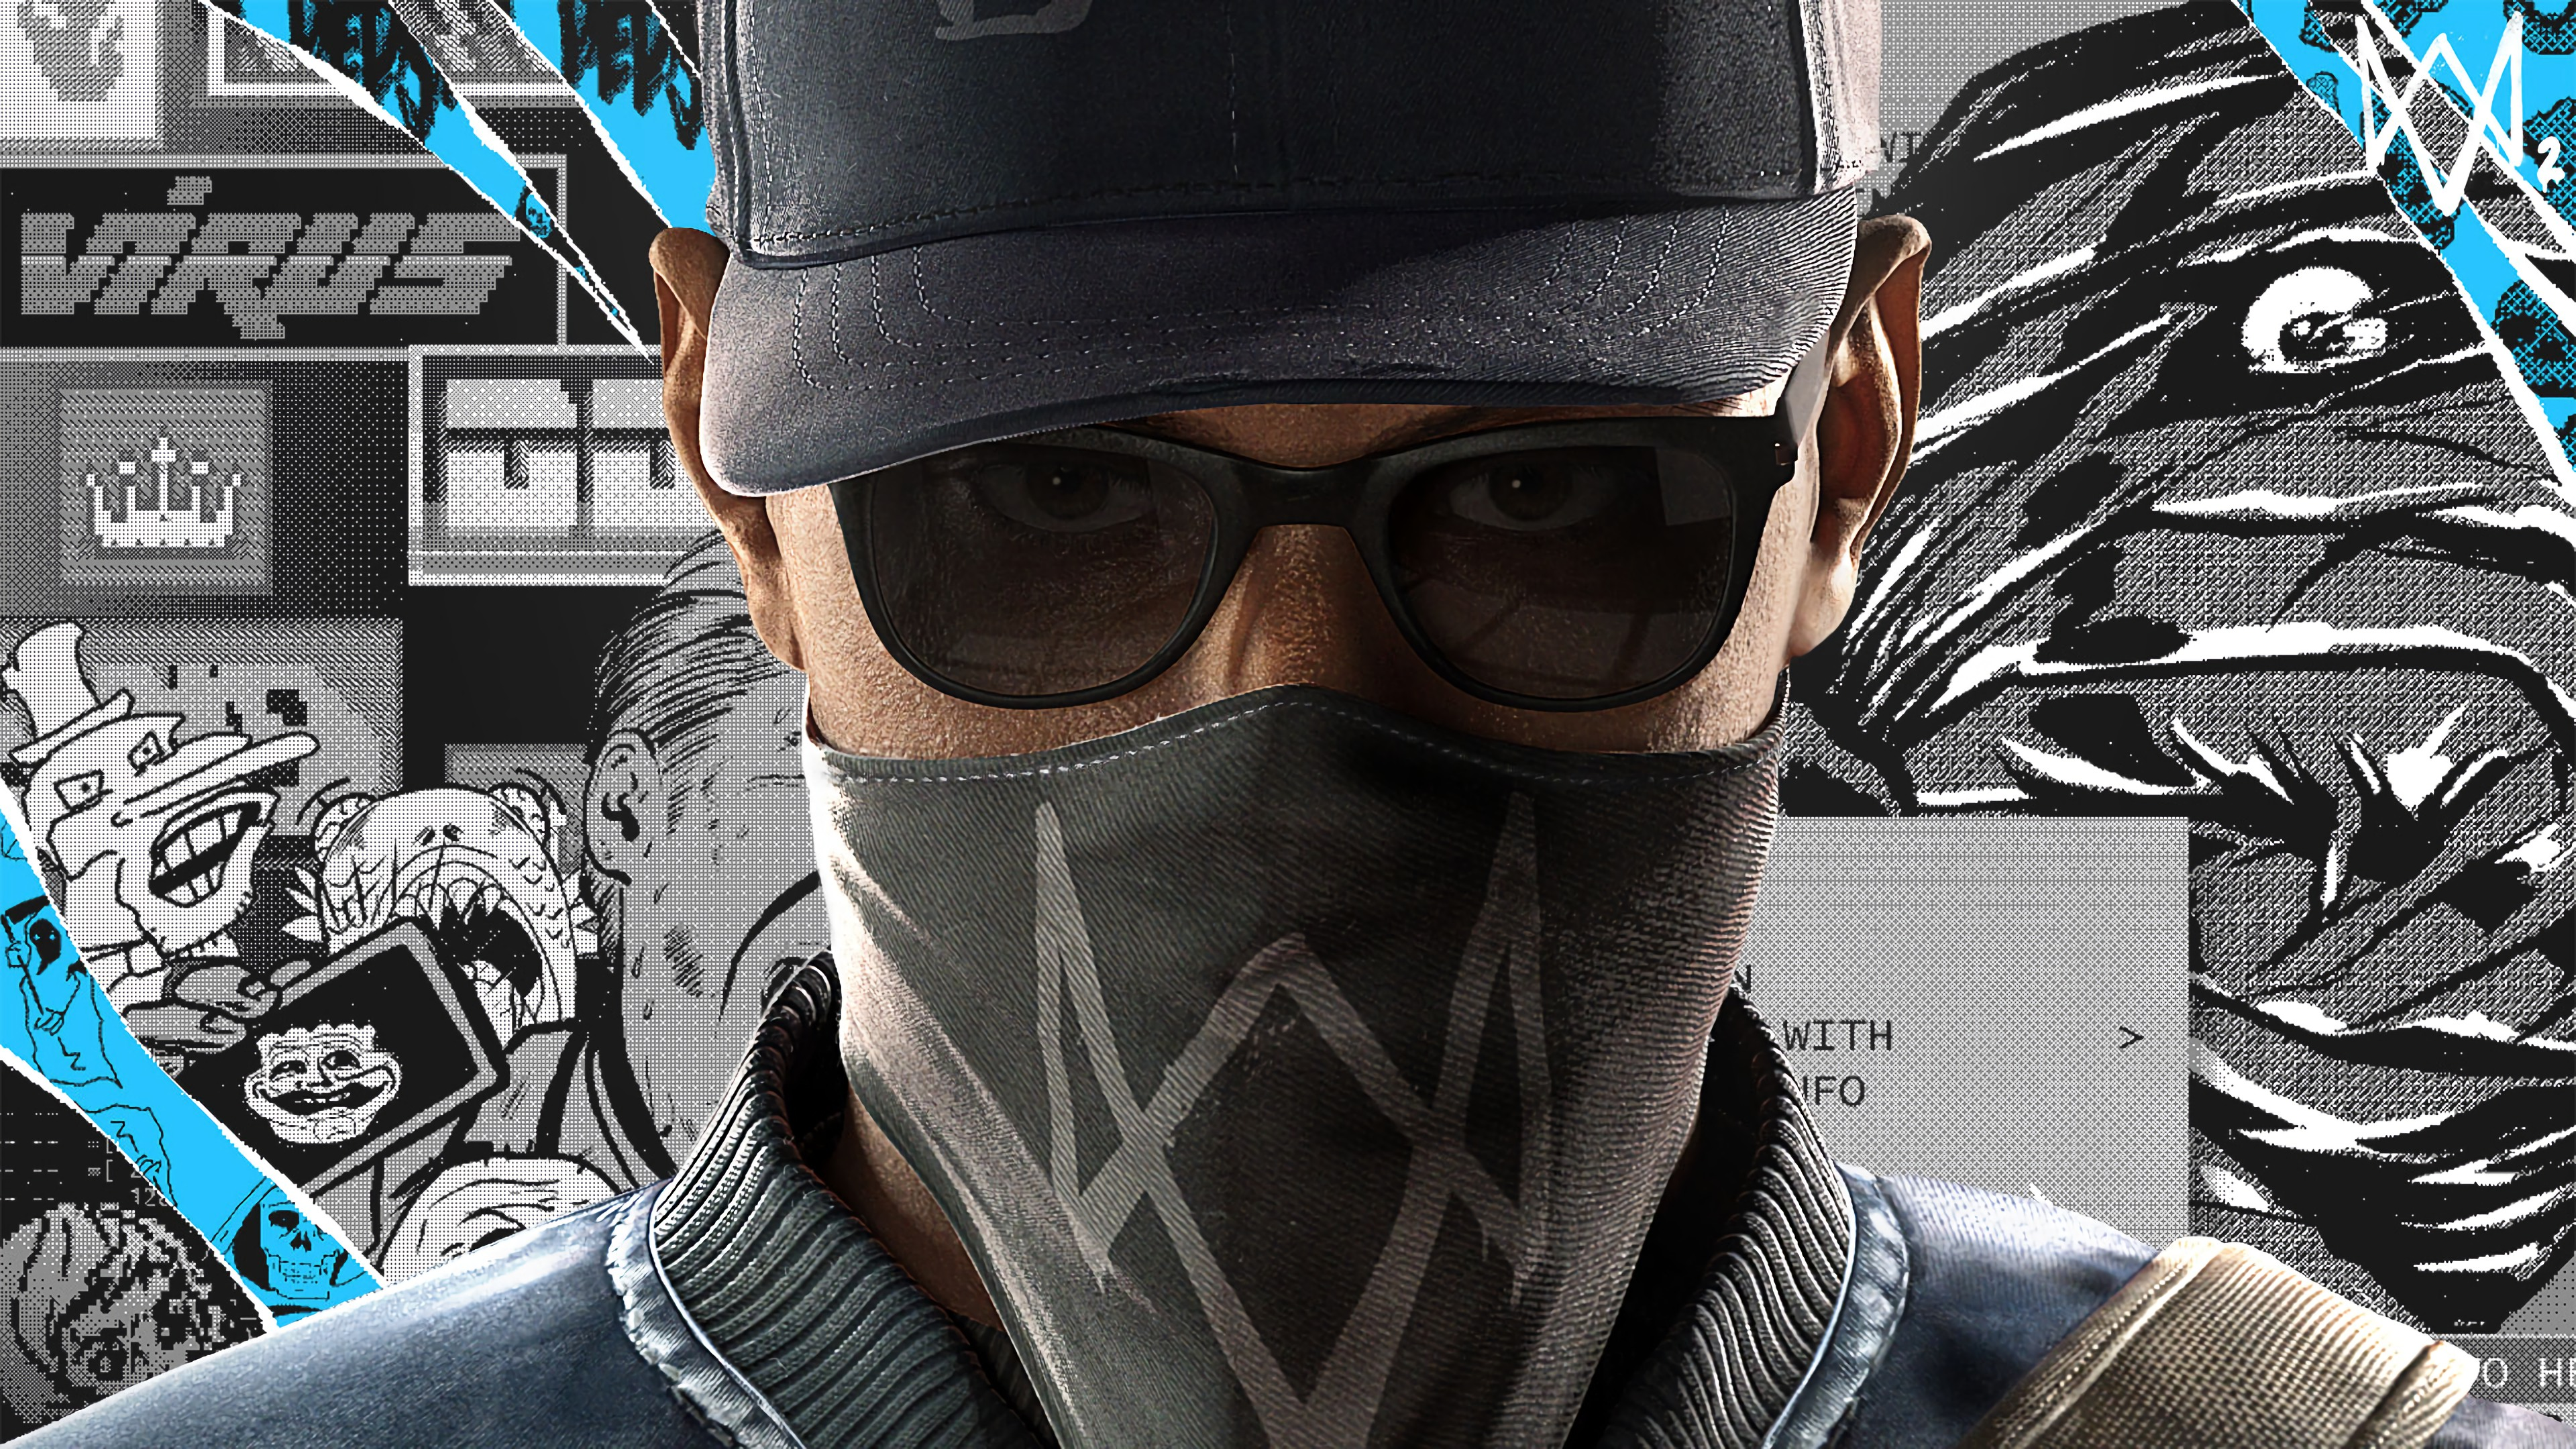 Watch Dogs Marcus Holloway 4K wallpaper